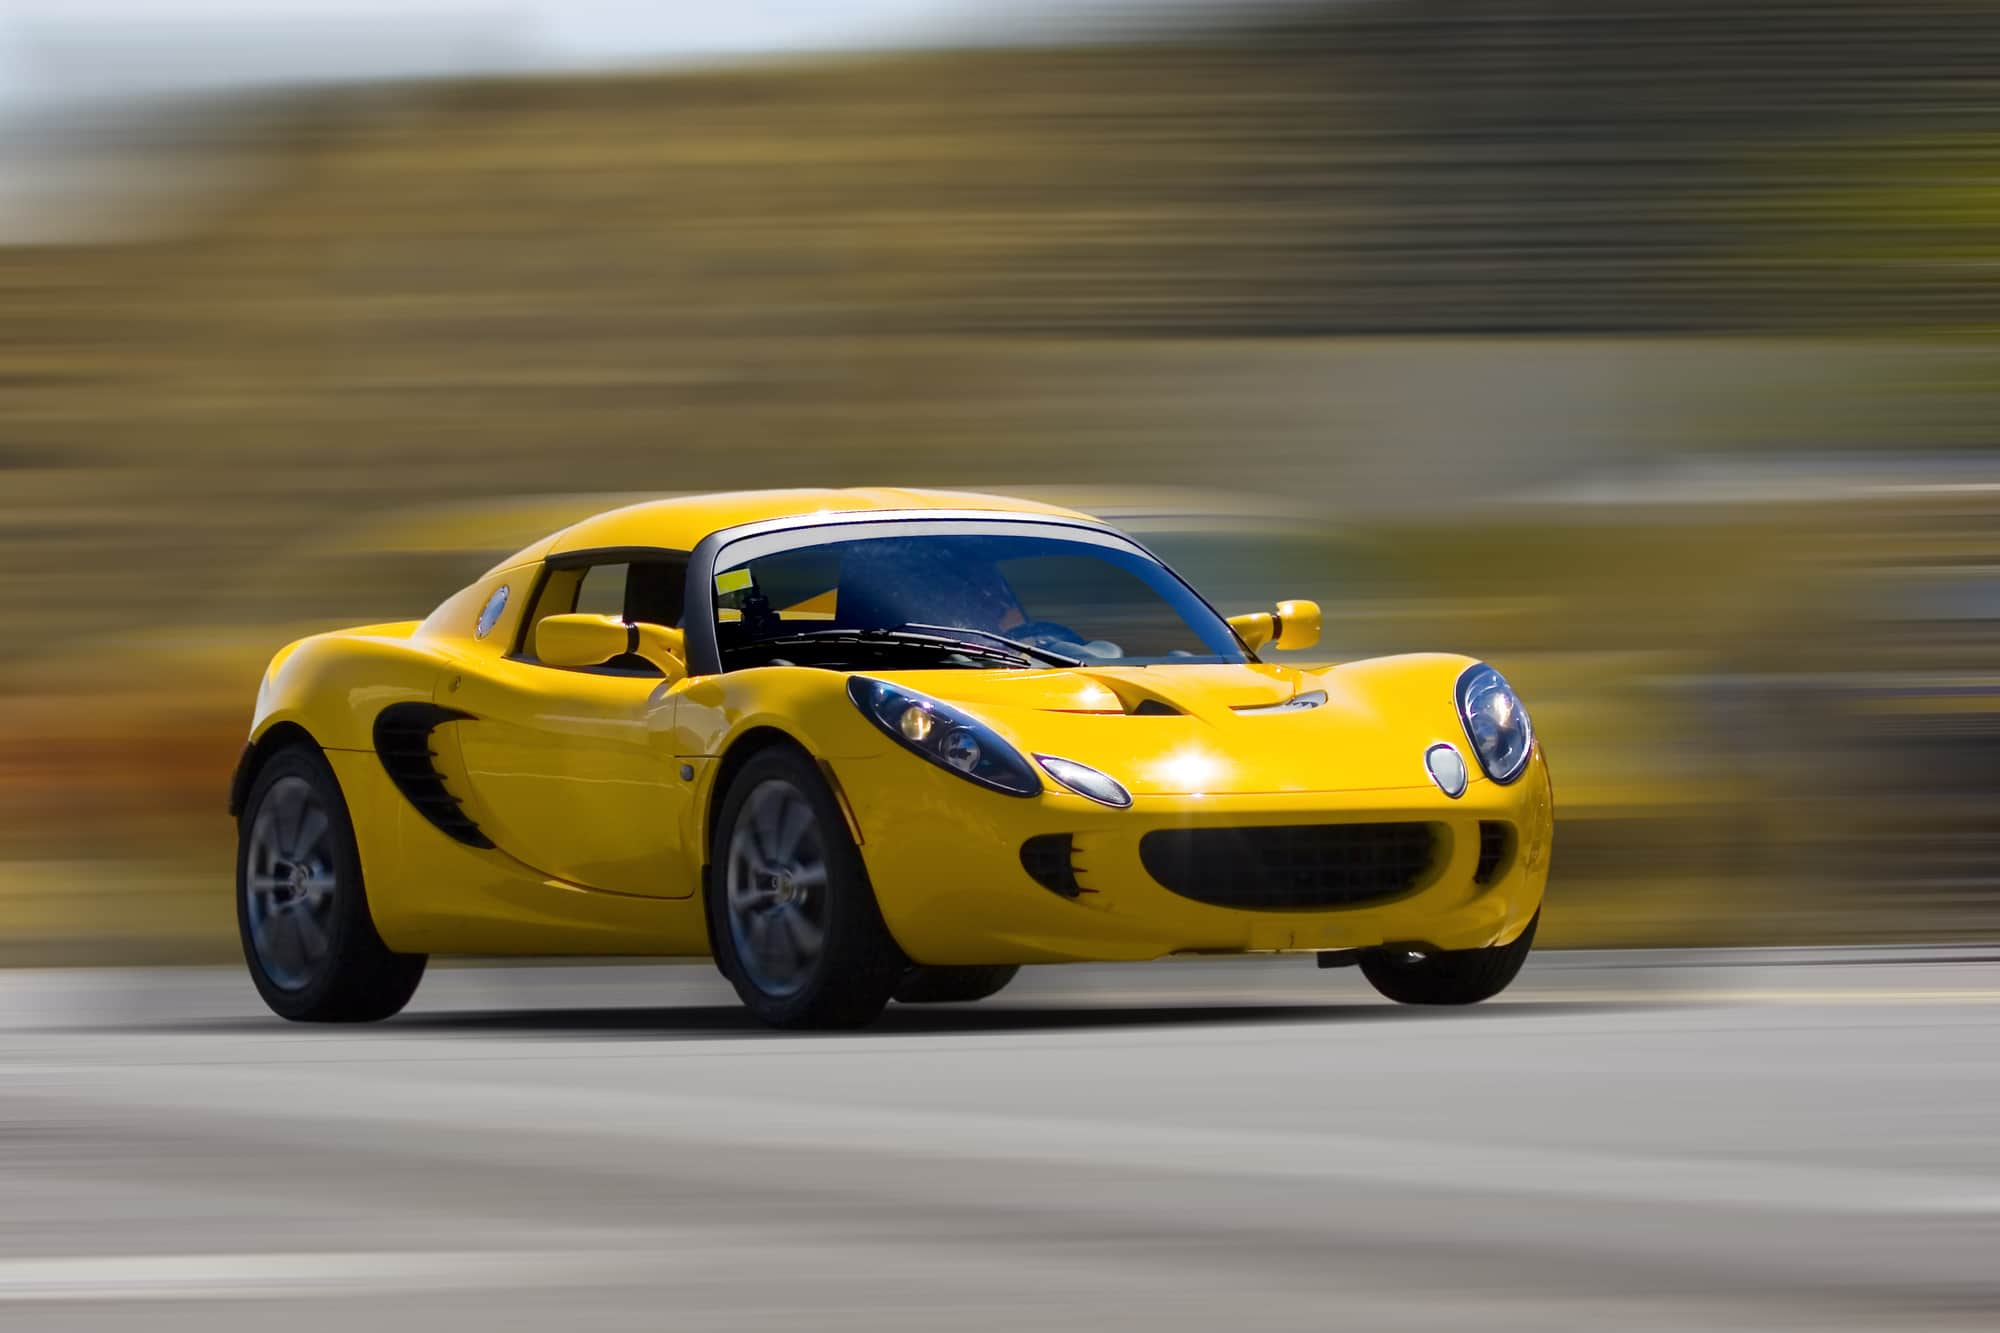 Cheap Sports Cars >> Save On Sports Car Insurance With These 3 Sports Cars